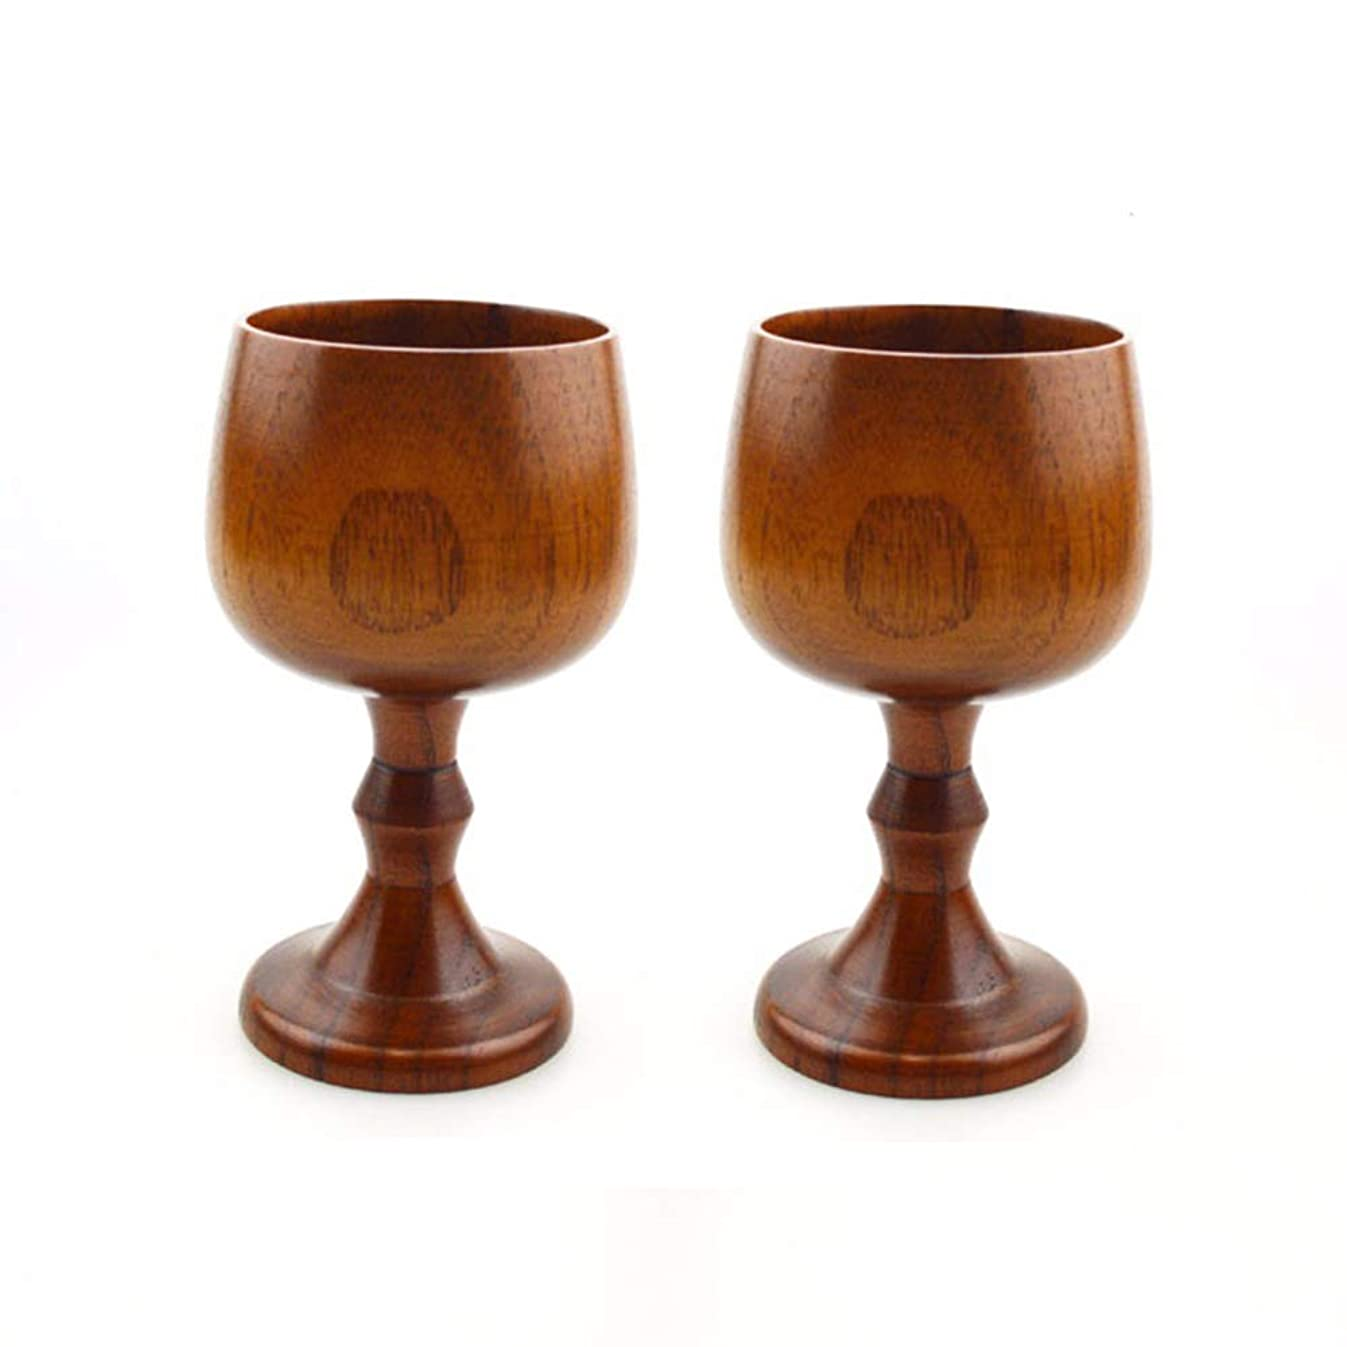 Vintage Jujube Wooden Wine Goblet Drinking Cup Water Cup Kitchen Accessories, 5.3 oz(150ml), Pack of 2